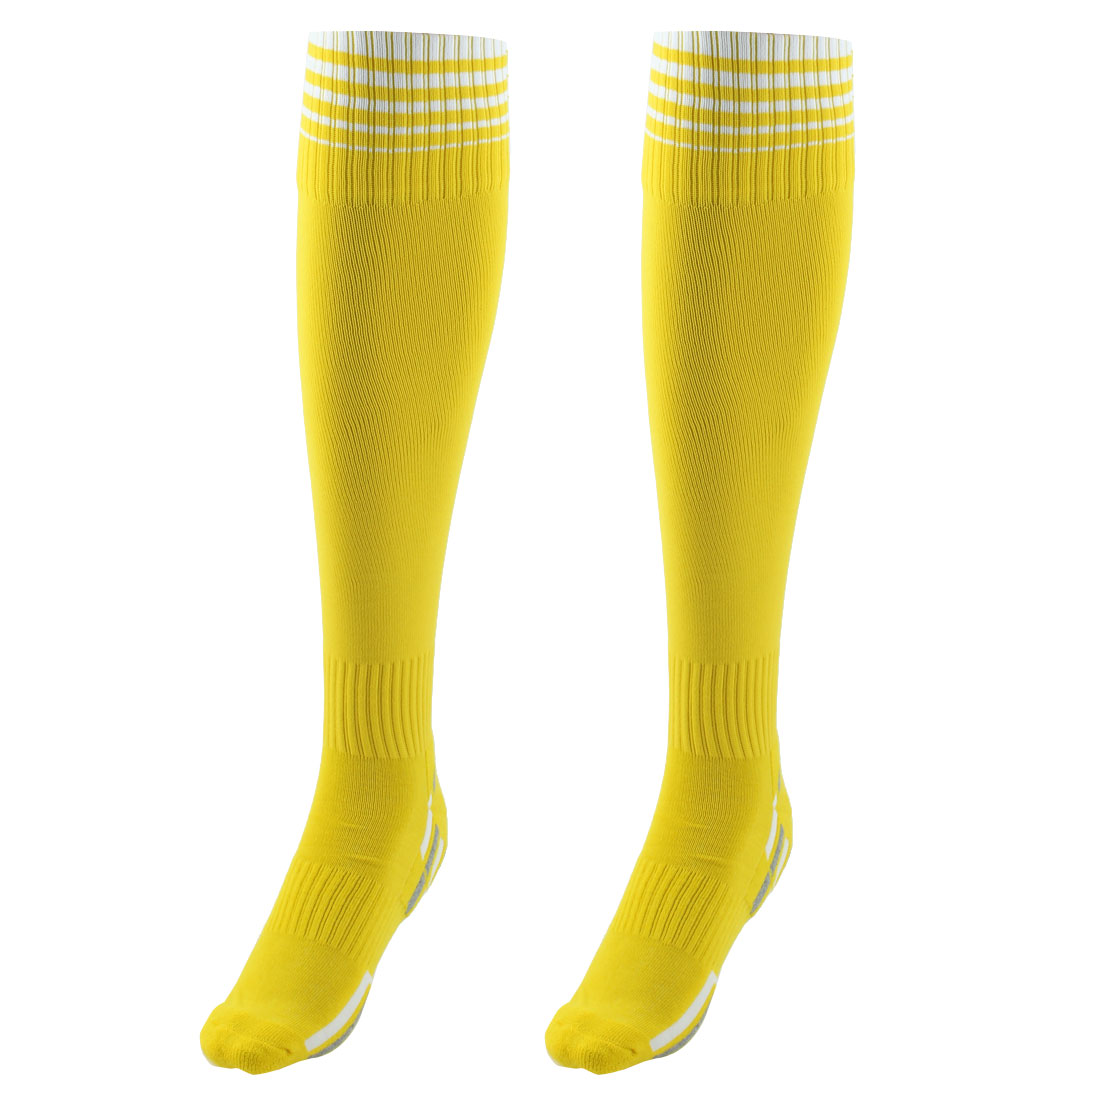 Unisex Nylon Anti Slip Stripe Pattern Elastic Football Soccer Sport Long Socks Yellow Pair